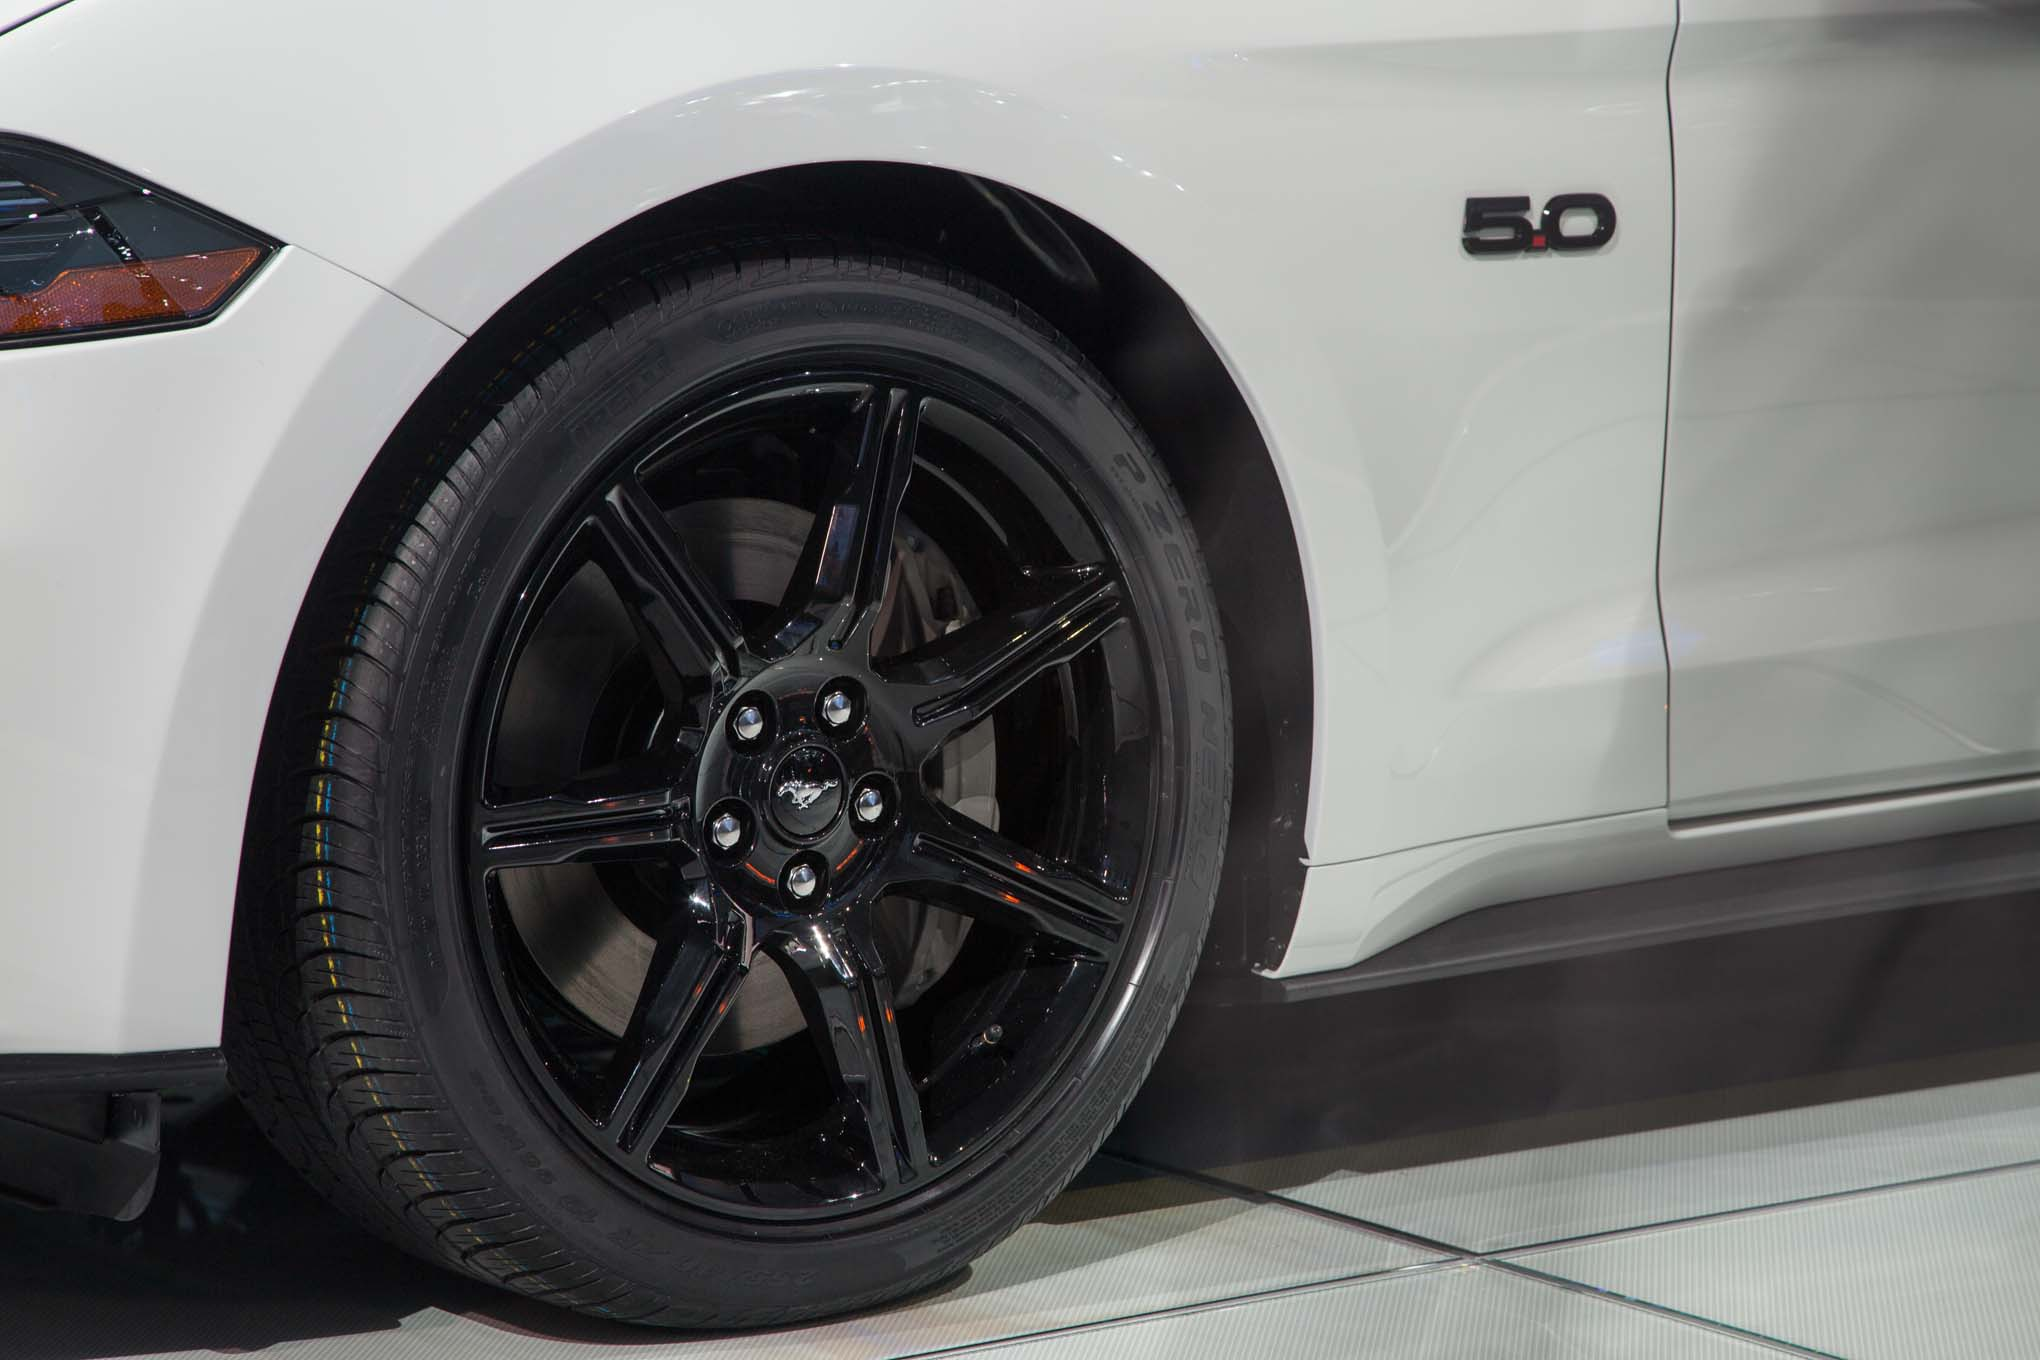 2018-Ford-Mustang-GT-front-wheel